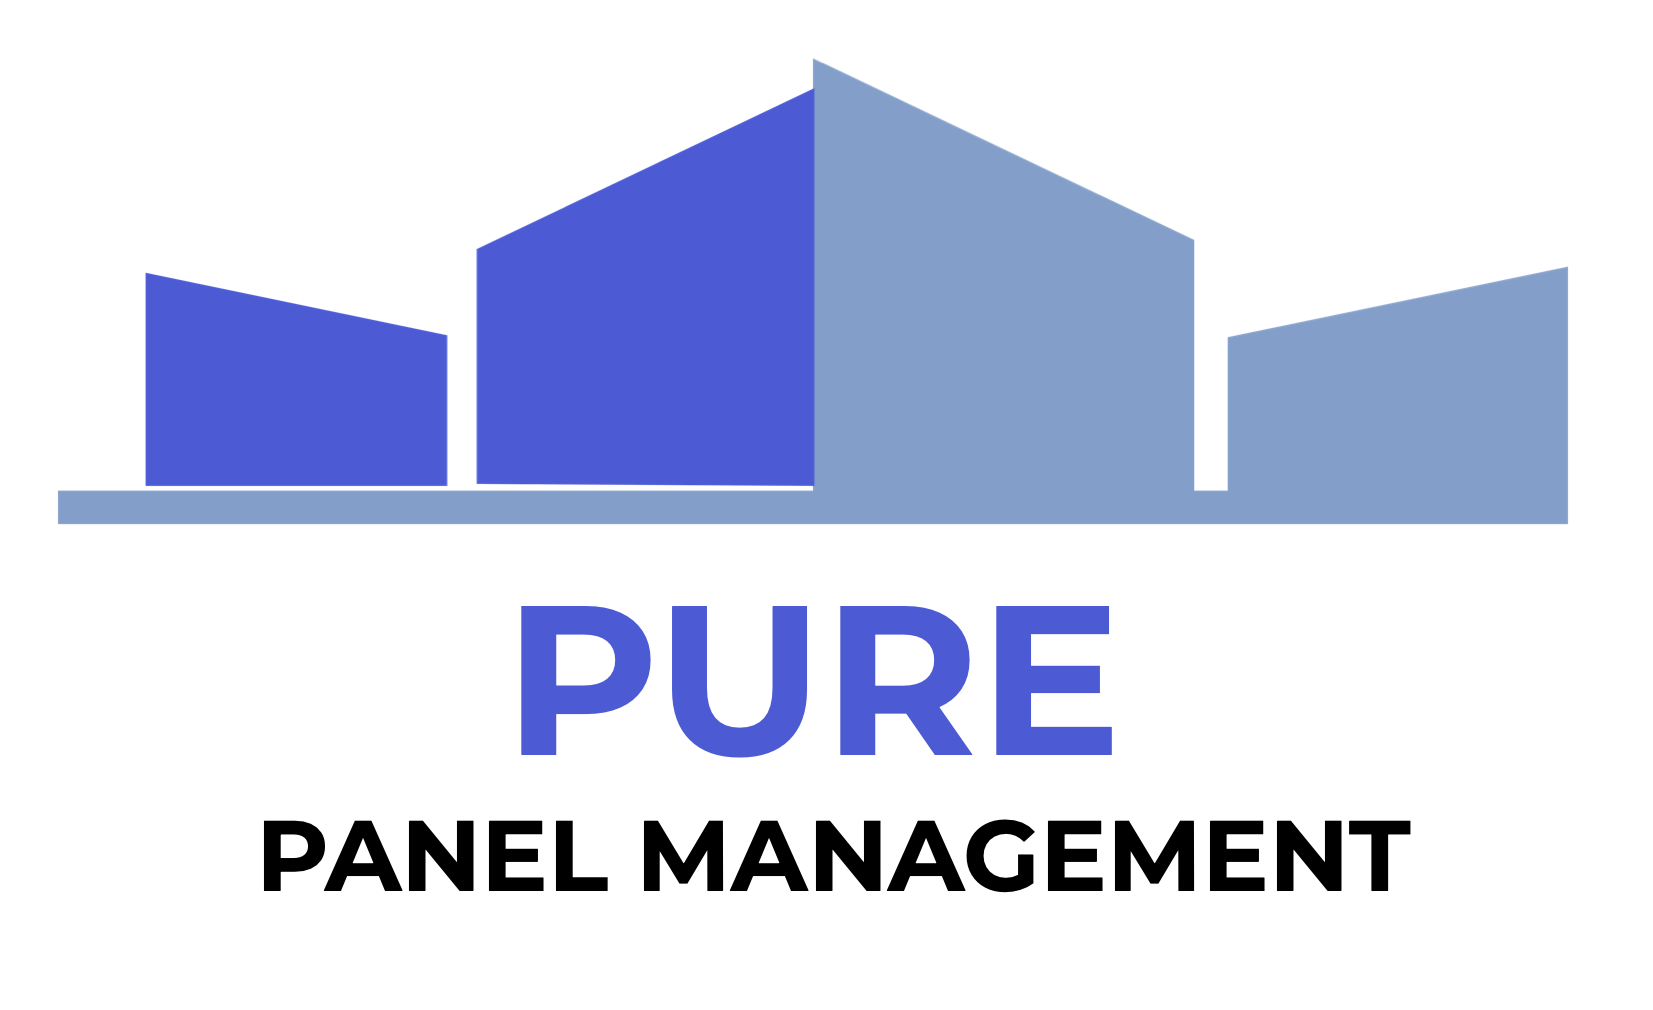 Pure Panel Management Ltd